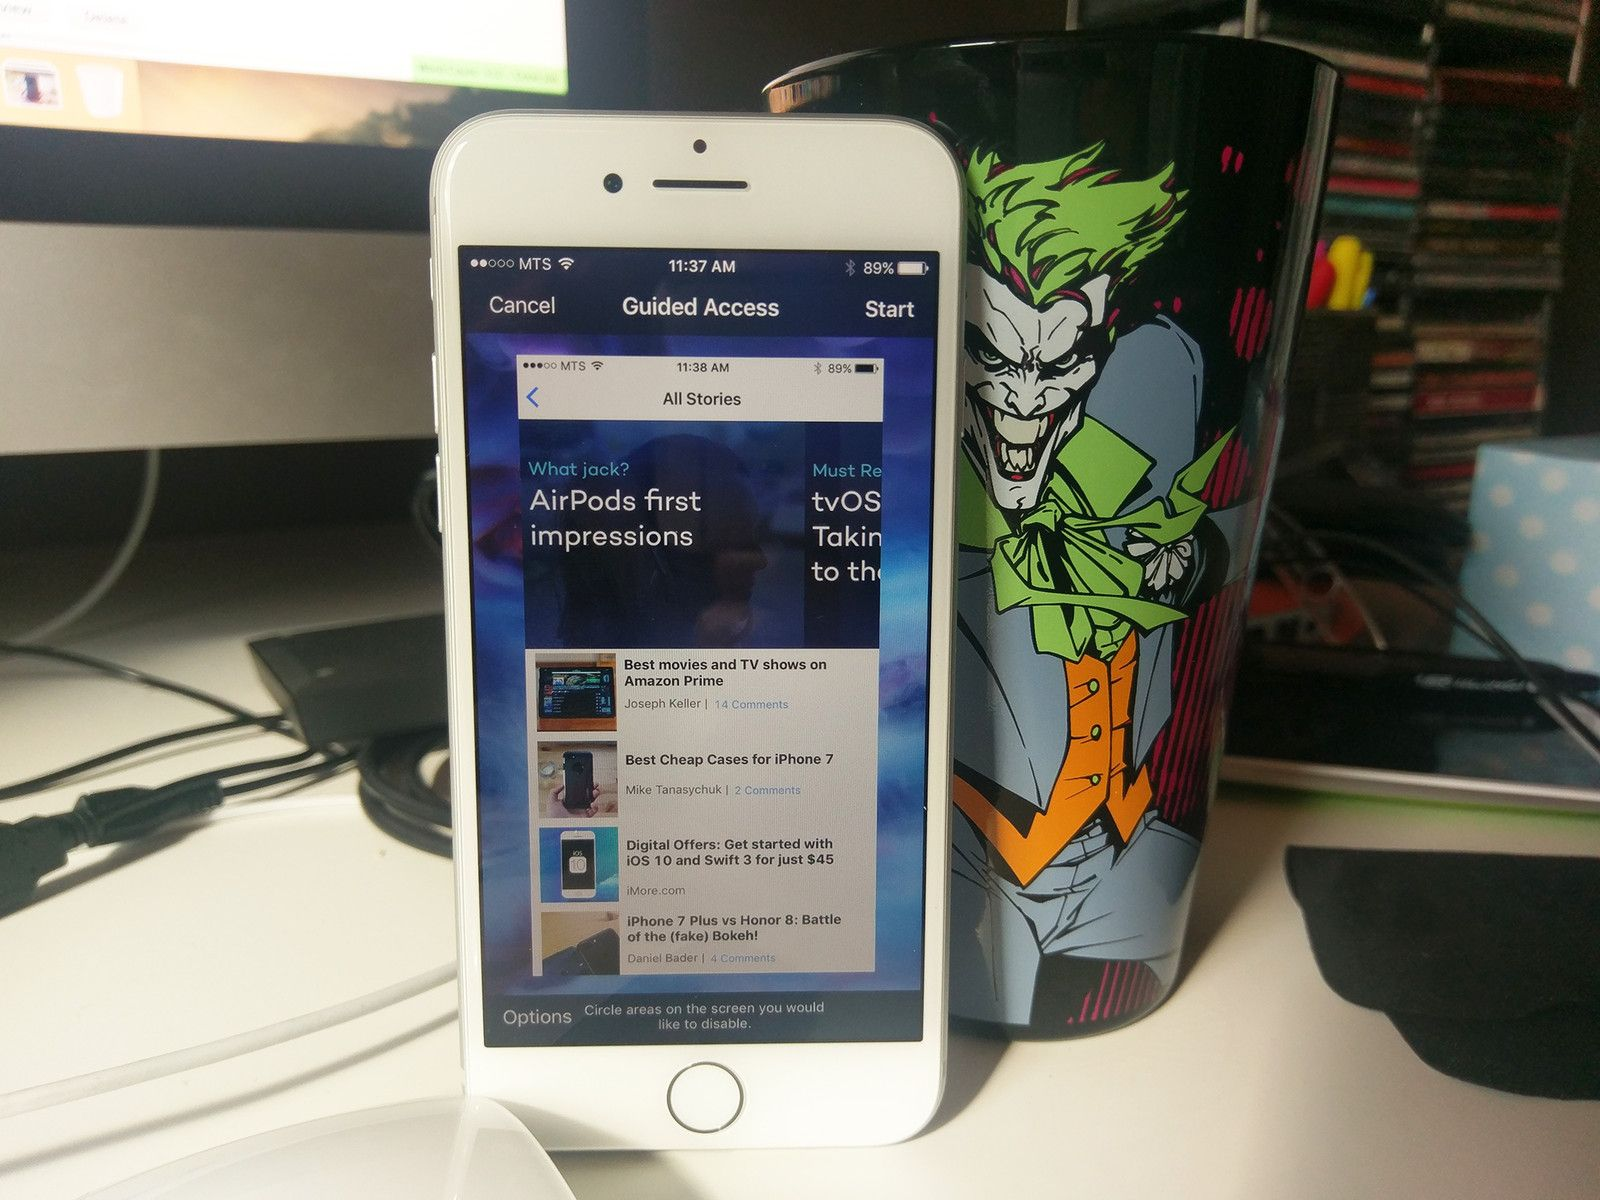 How to use Guided Access on iPhone and iPad Kids